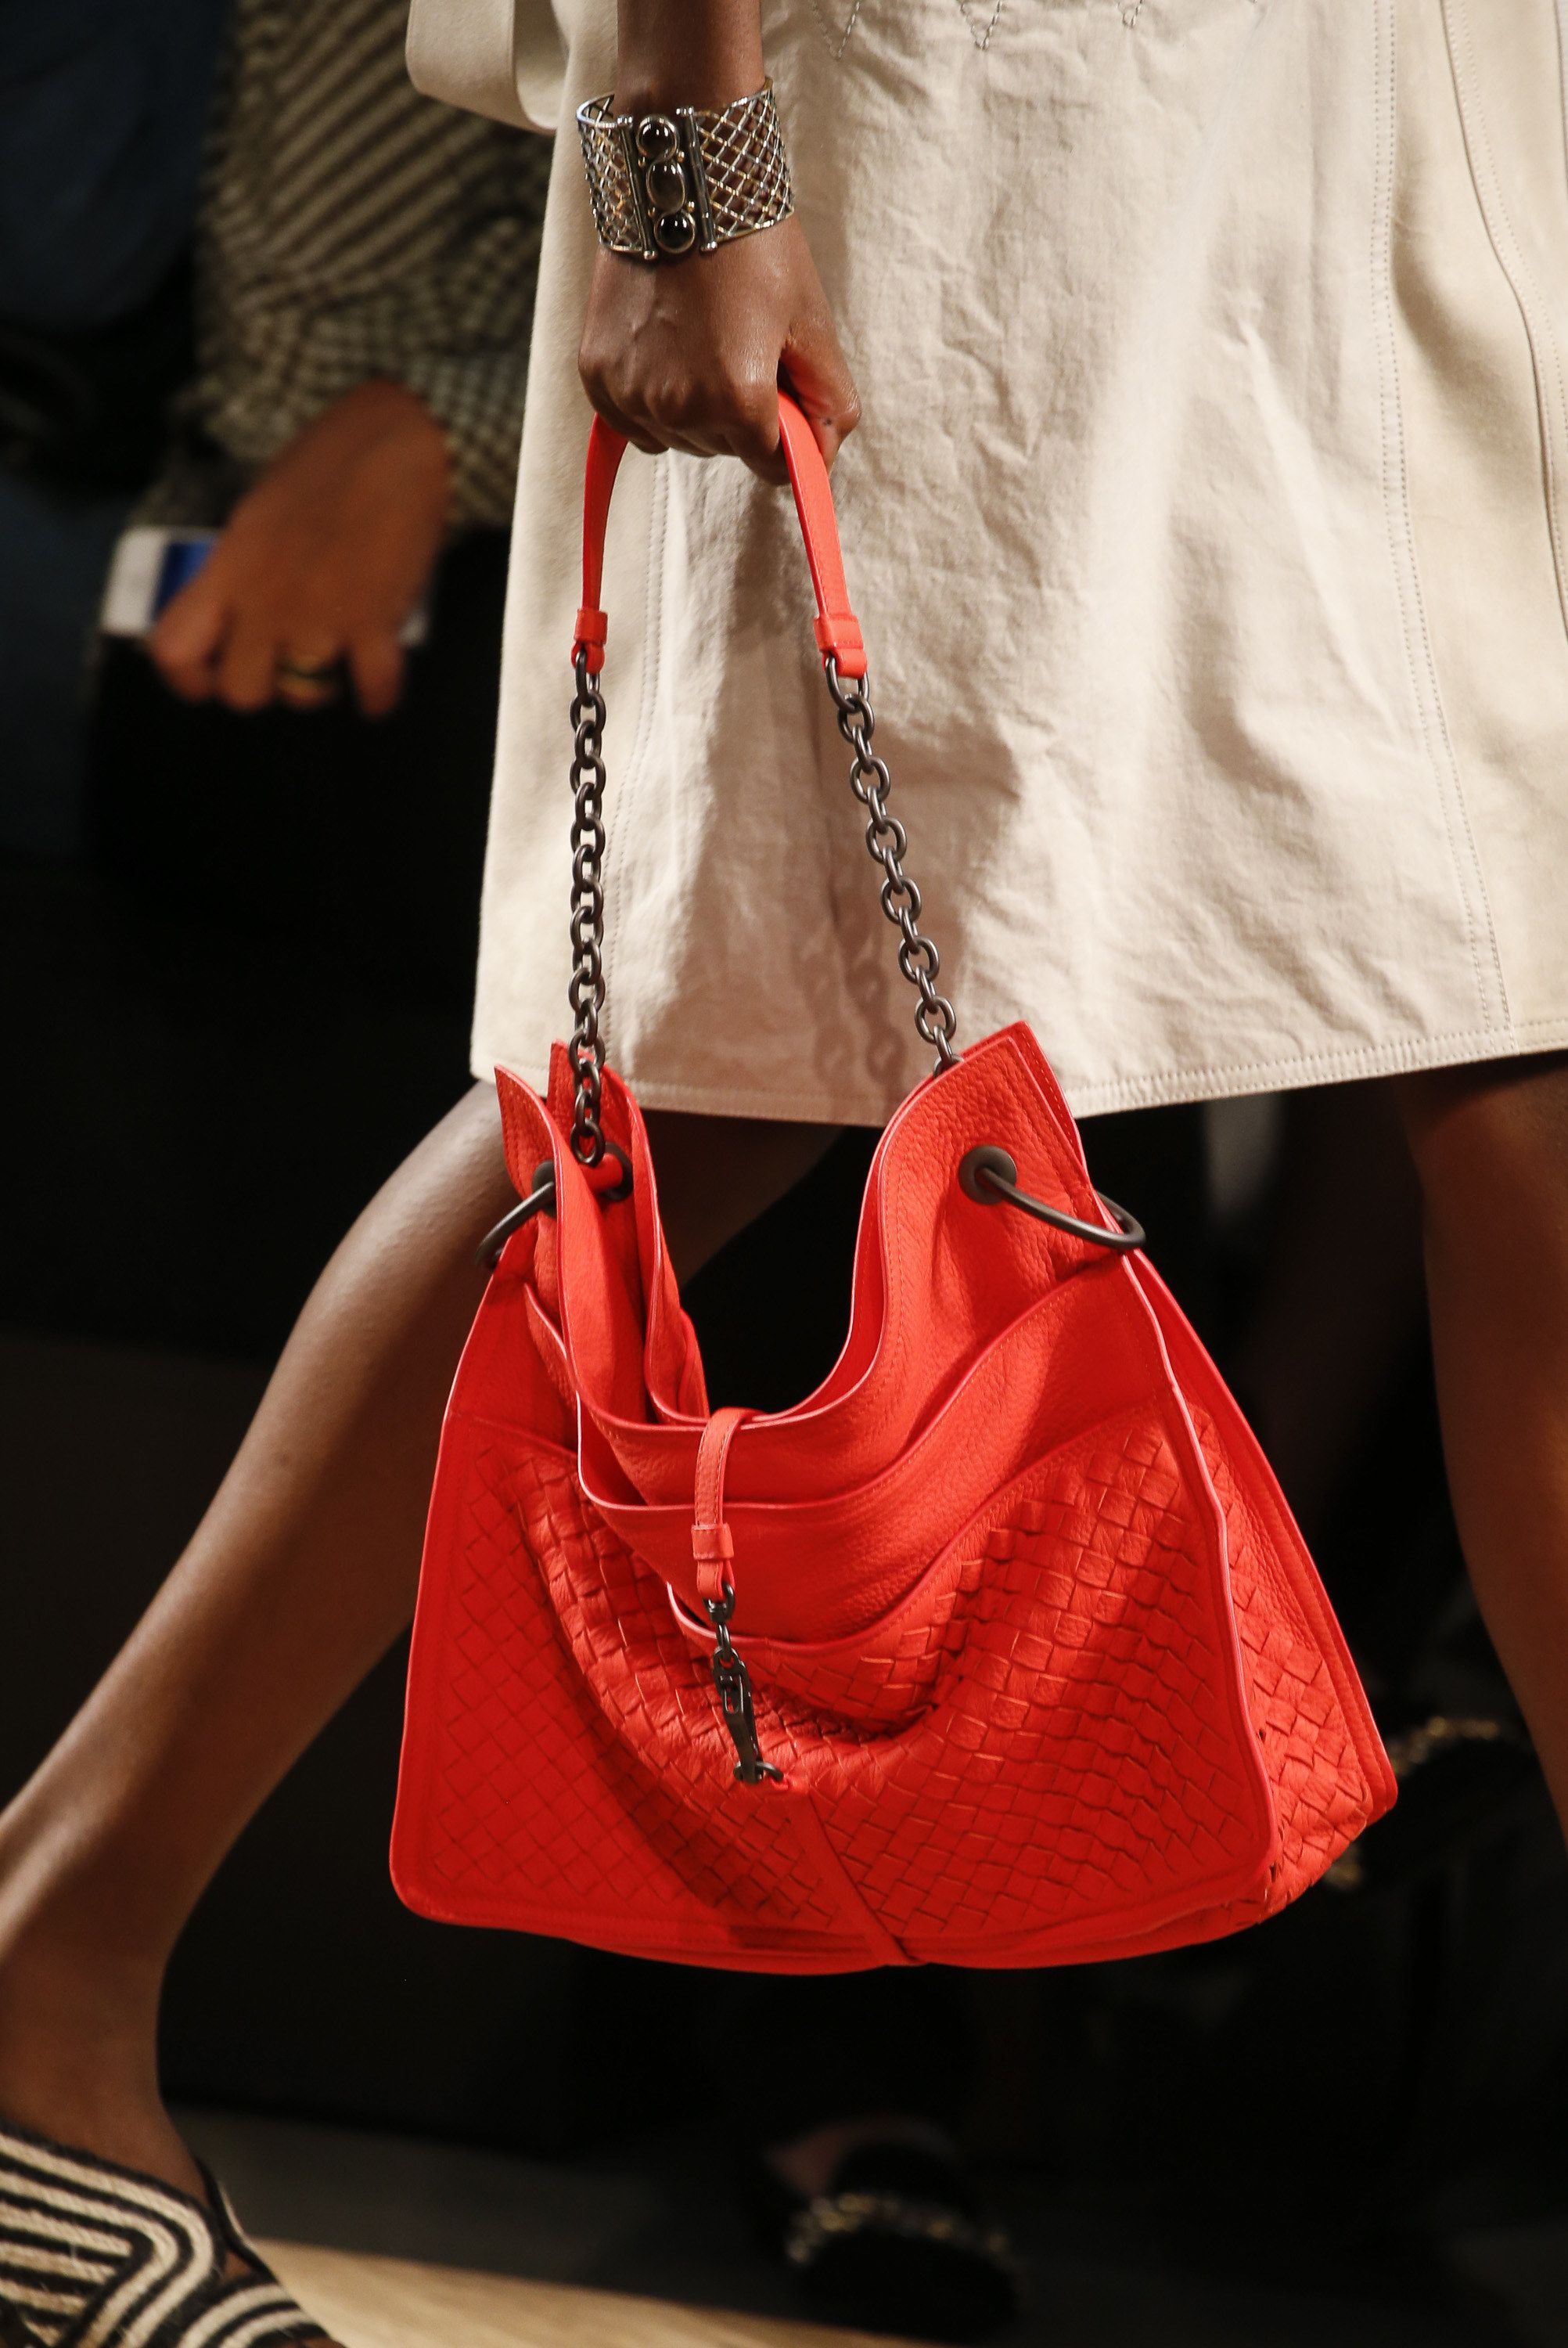 14d25e99ff92 Bottega Veneta Spring 2016 Ready-to-Wear Accessories Photos - Vogue Fashion  Bags